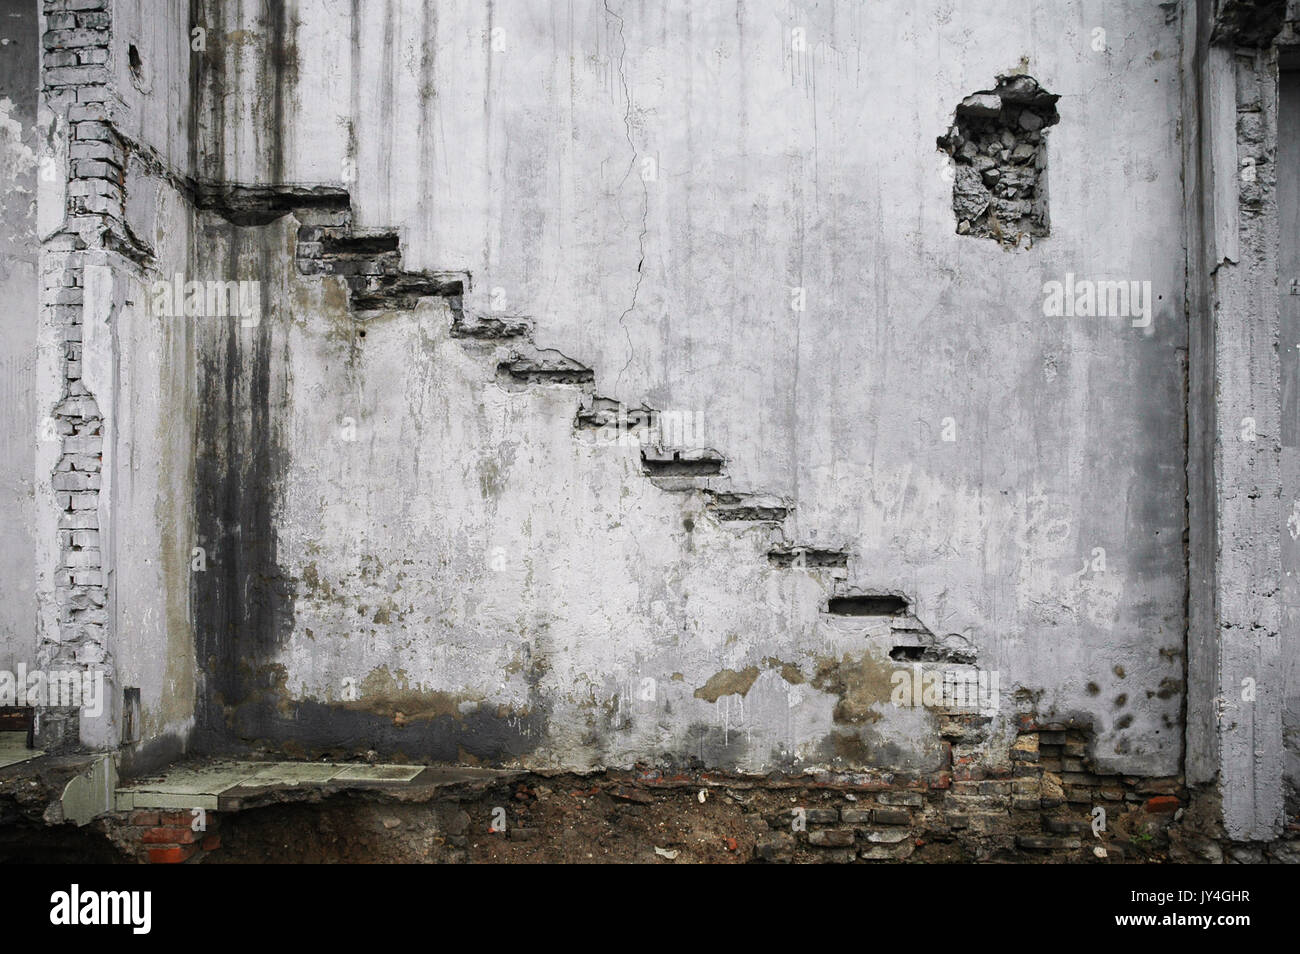 Remnants of a staircase in a demolished building in a hutong in Beijing, China. - Stock Image